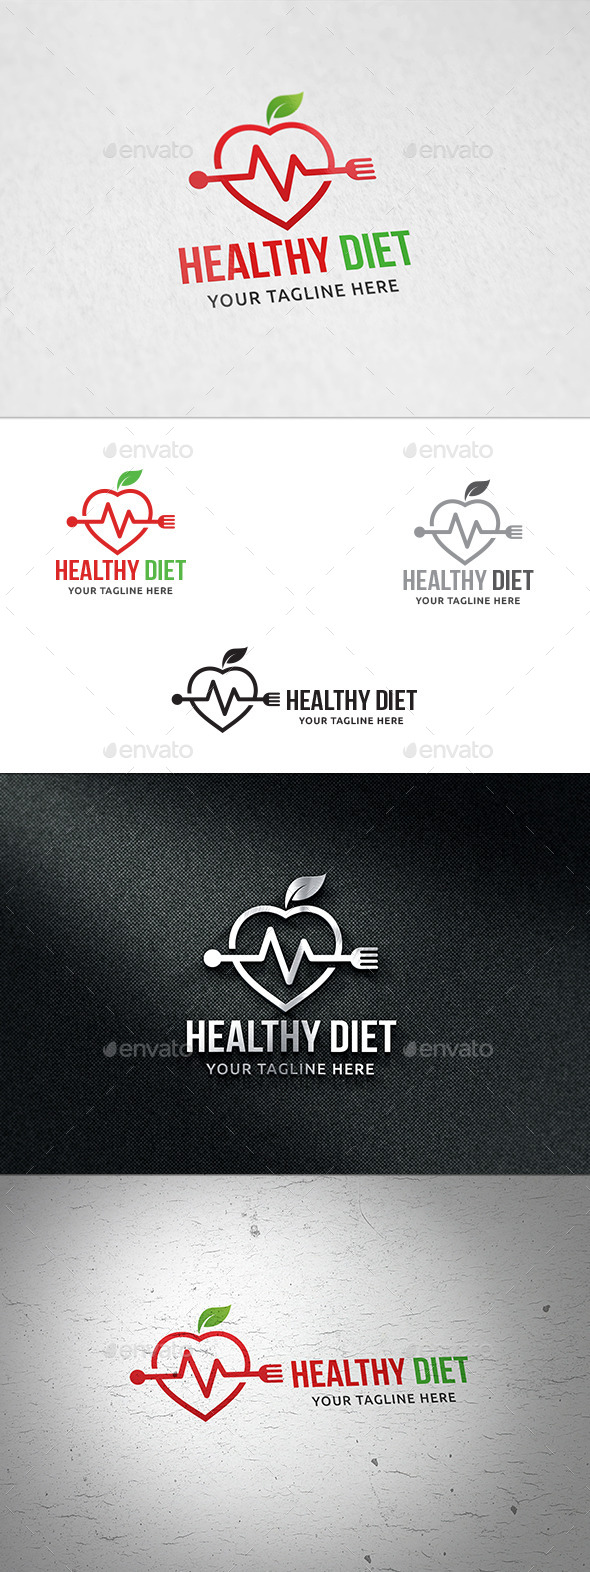 GraphicRiver Healthy Diet Logo Template 11866638